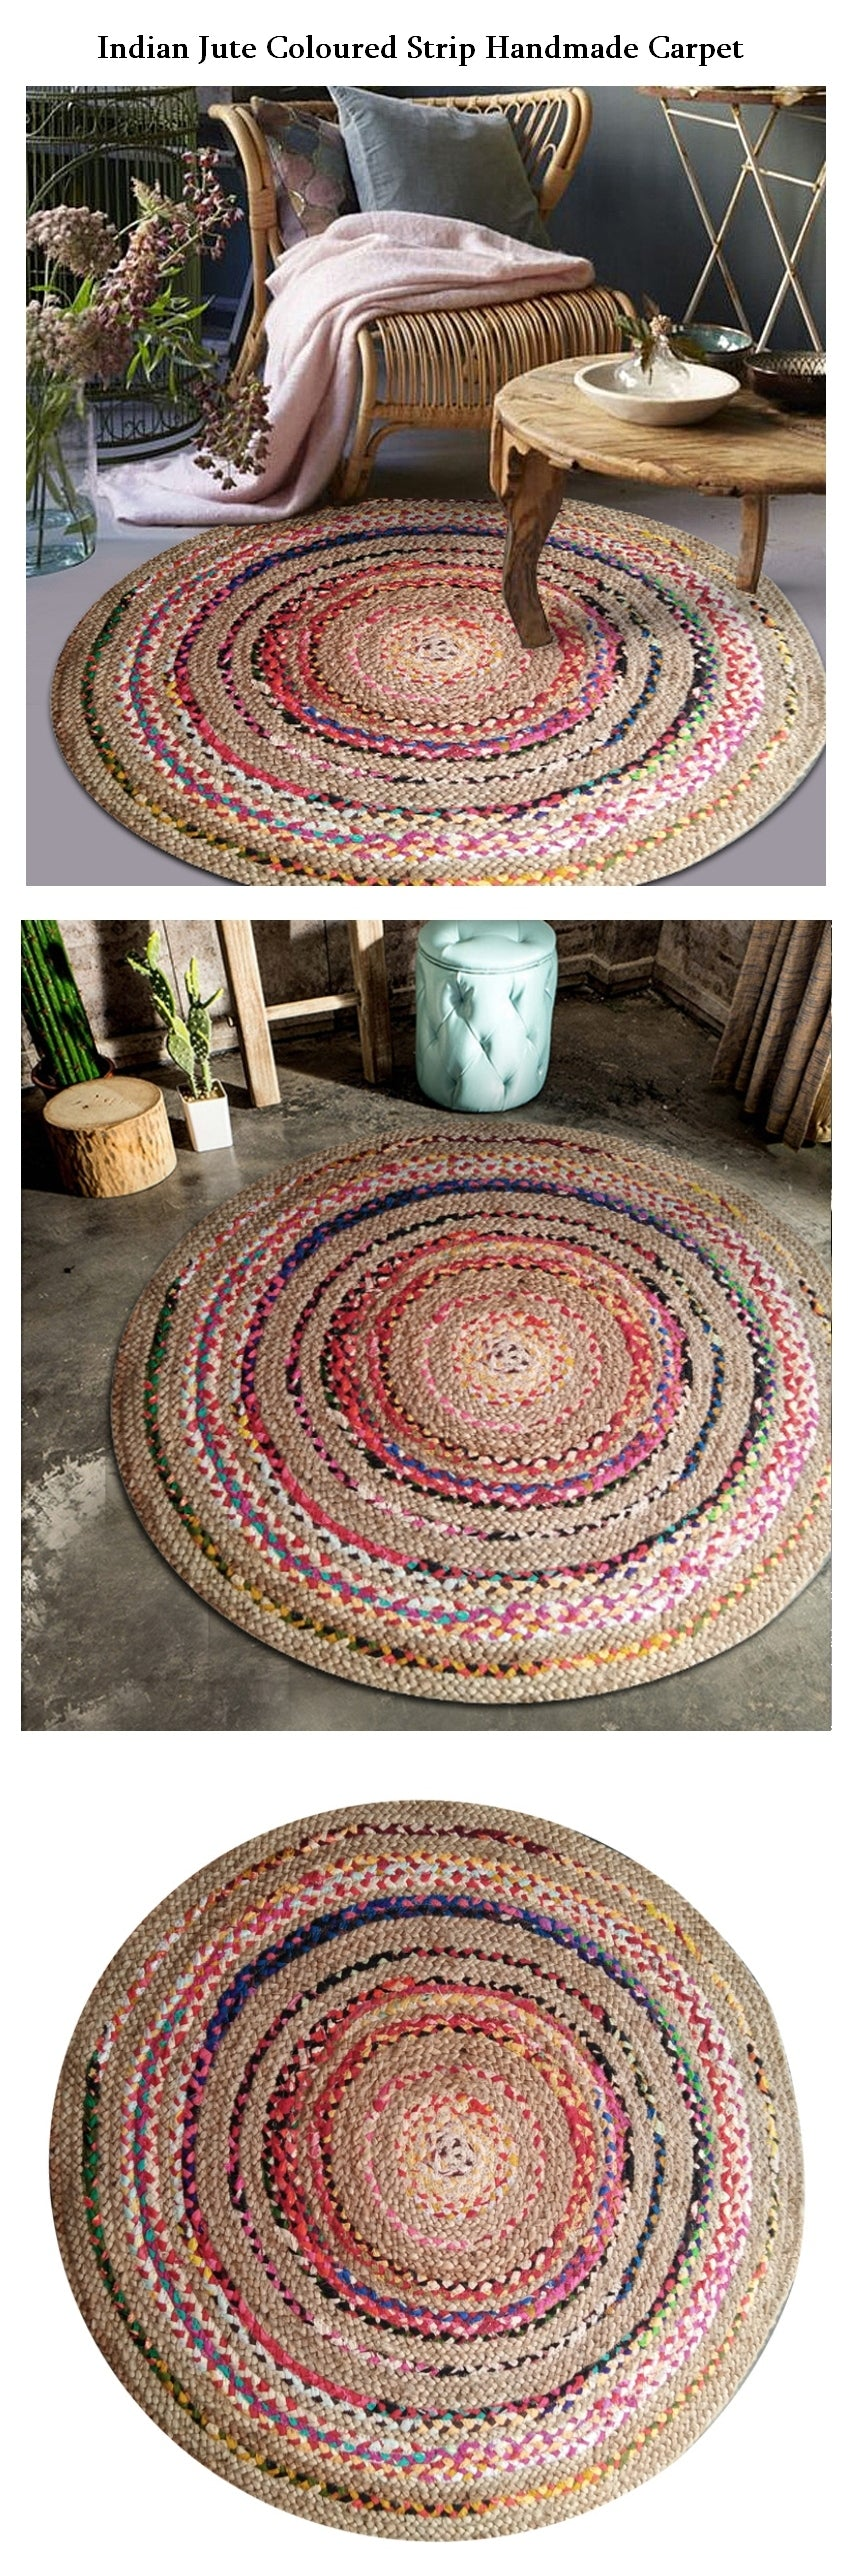 Indian Jute handmade floor carpet